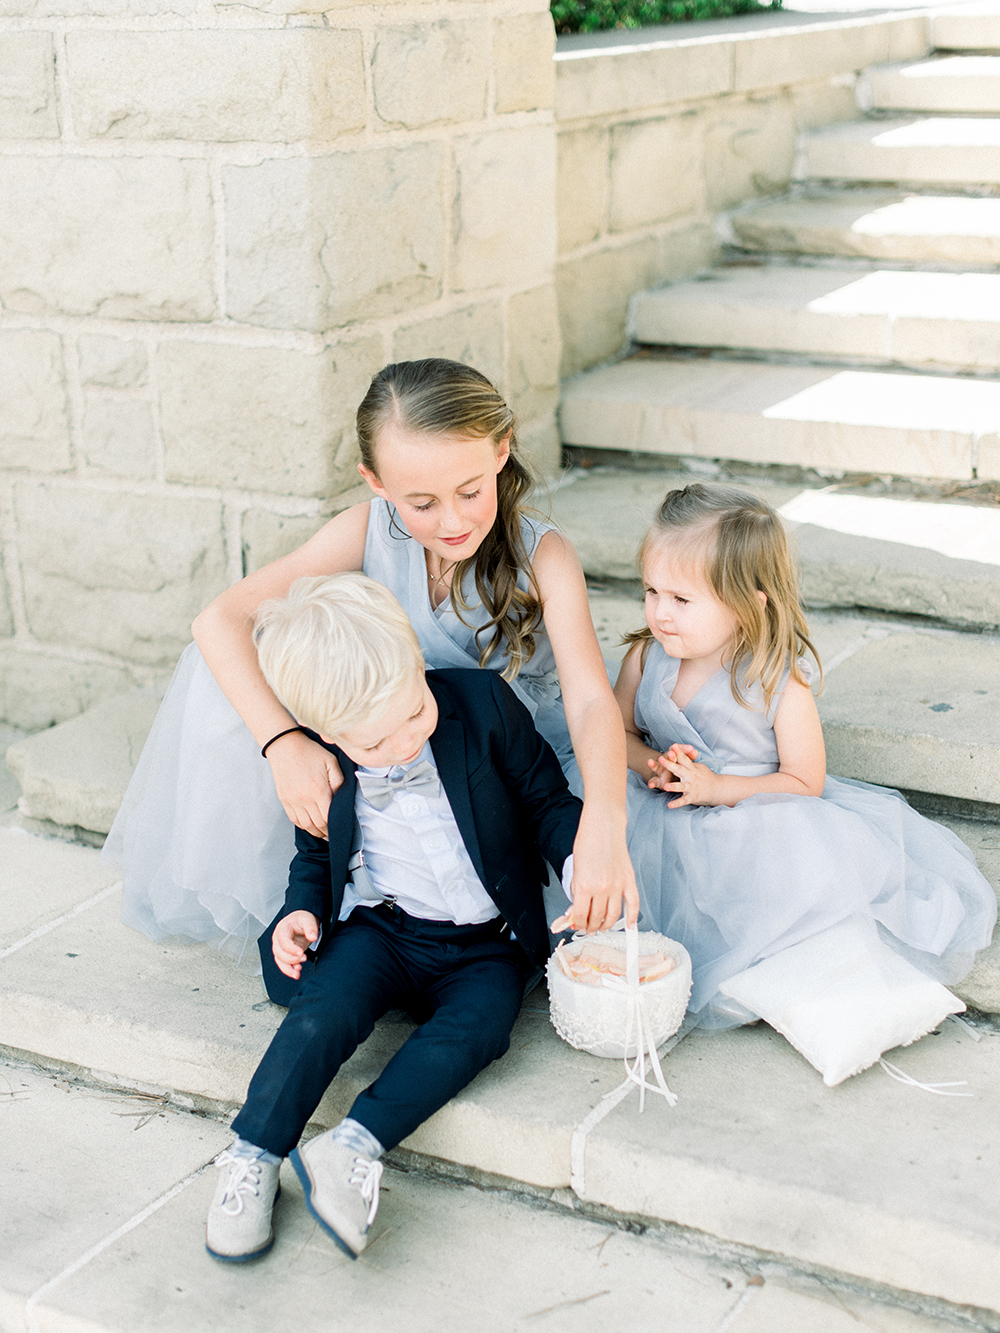 Romantic and Classic Greystone Mansion Wedding by Lucky Day Events Co. x Jordan Galindo Photography // Ring Bearer and Flower Girls